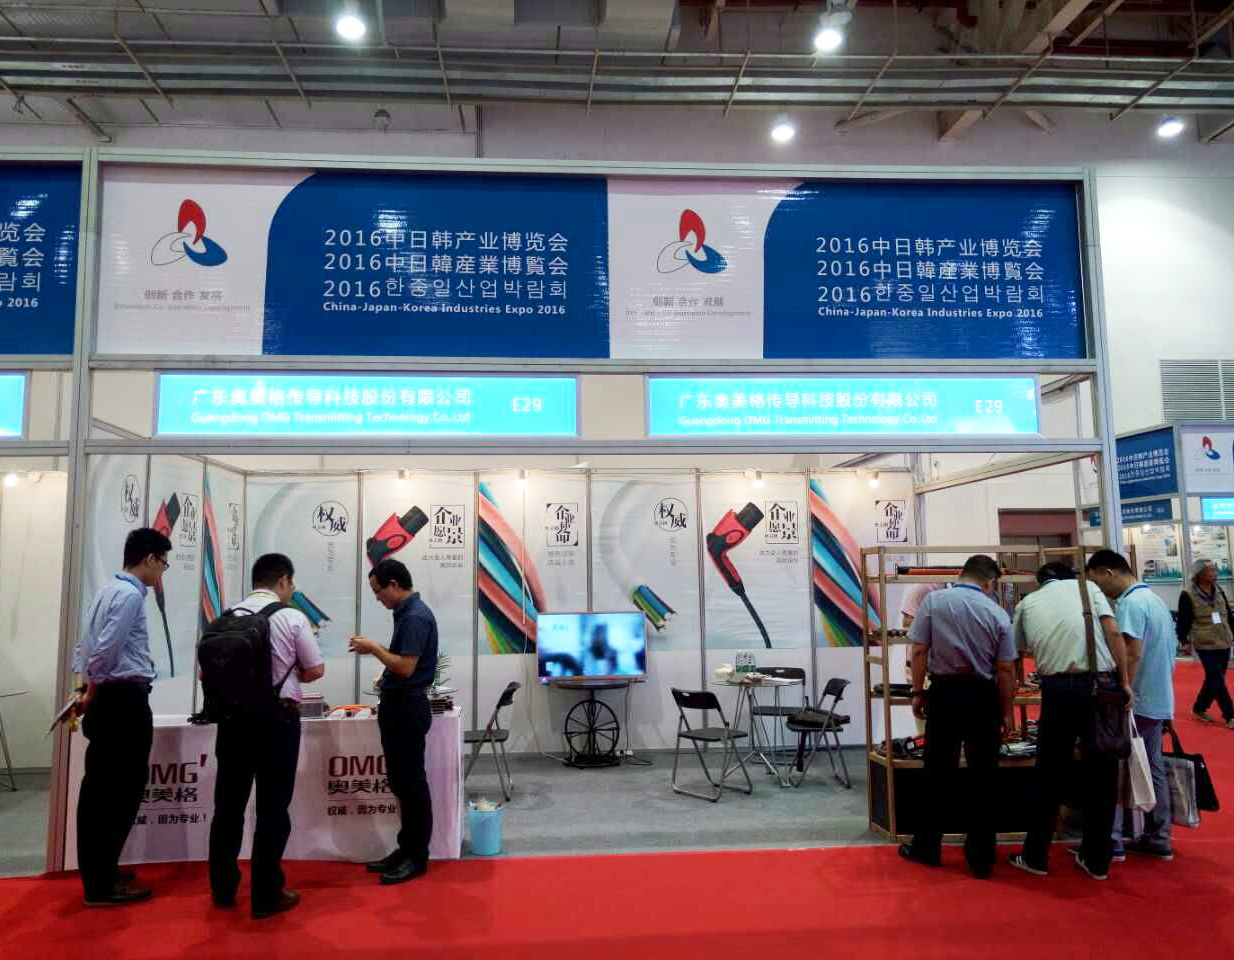 OMG participated in the 2016 China-Japan-Korea Industry Expo in Weifang, Shandong